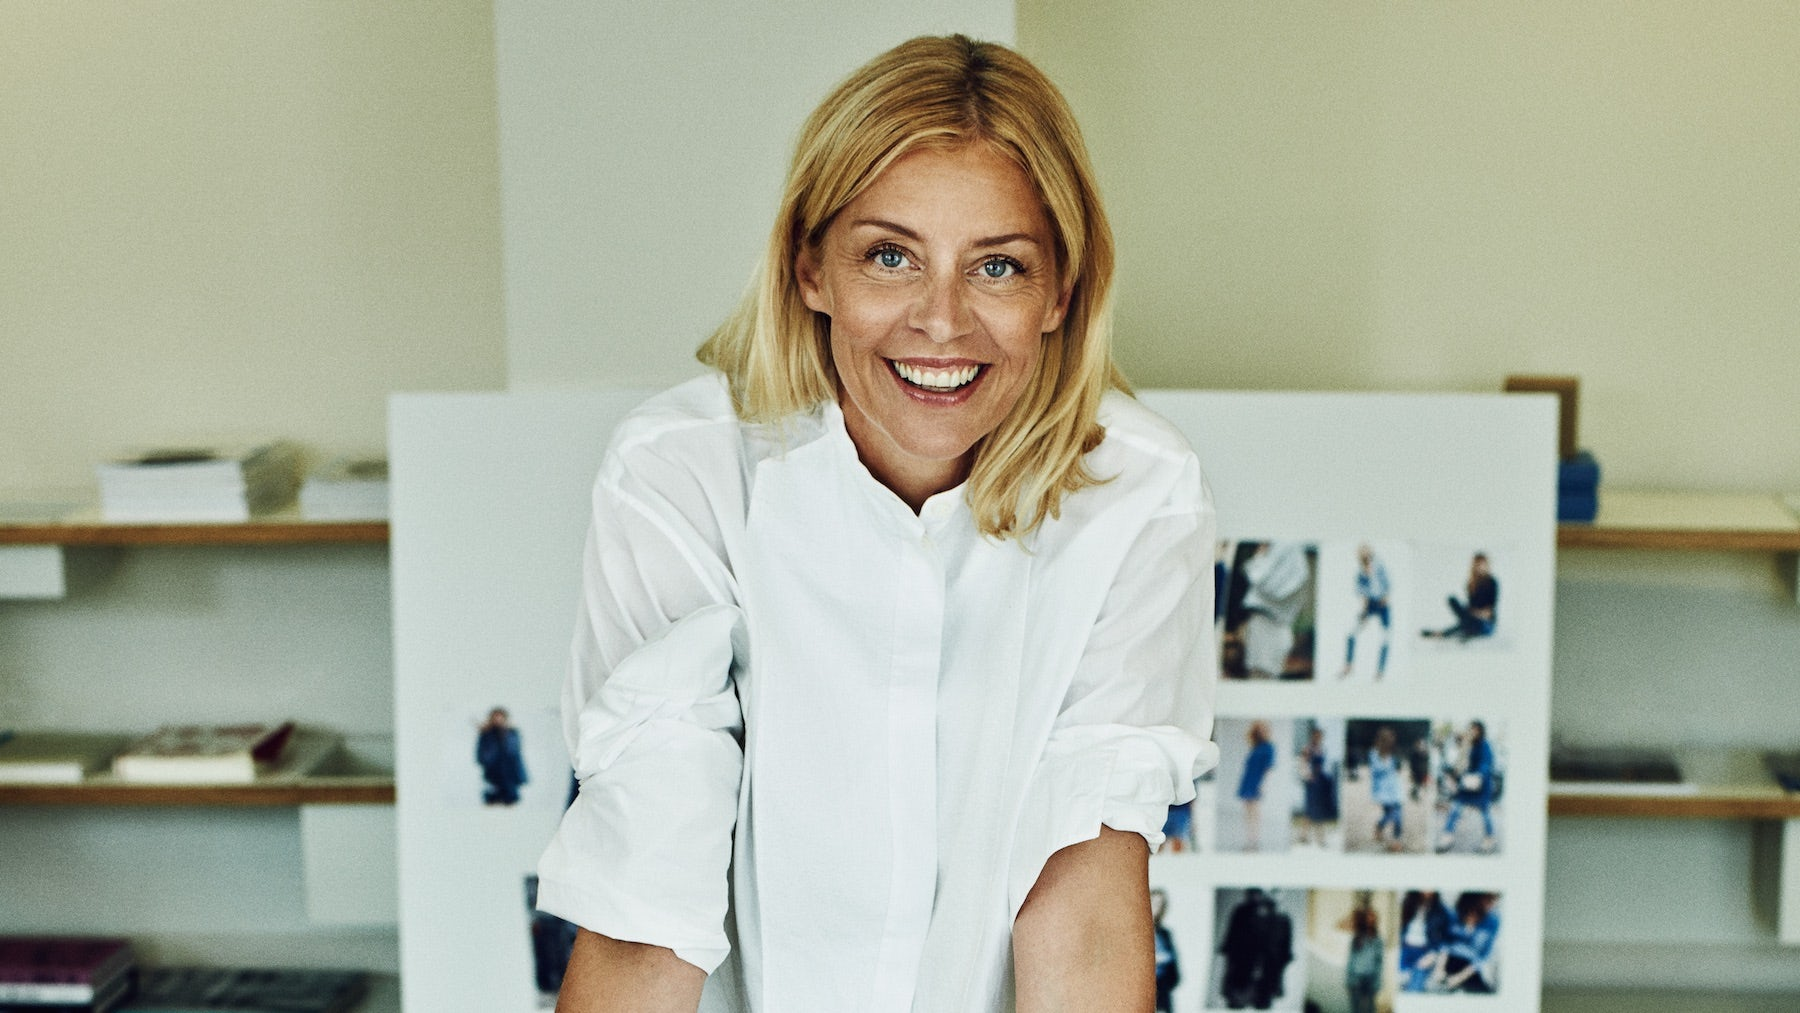 Rebekka Bay Joins Uniqlo, Michael Kors Appoints CFO and More...